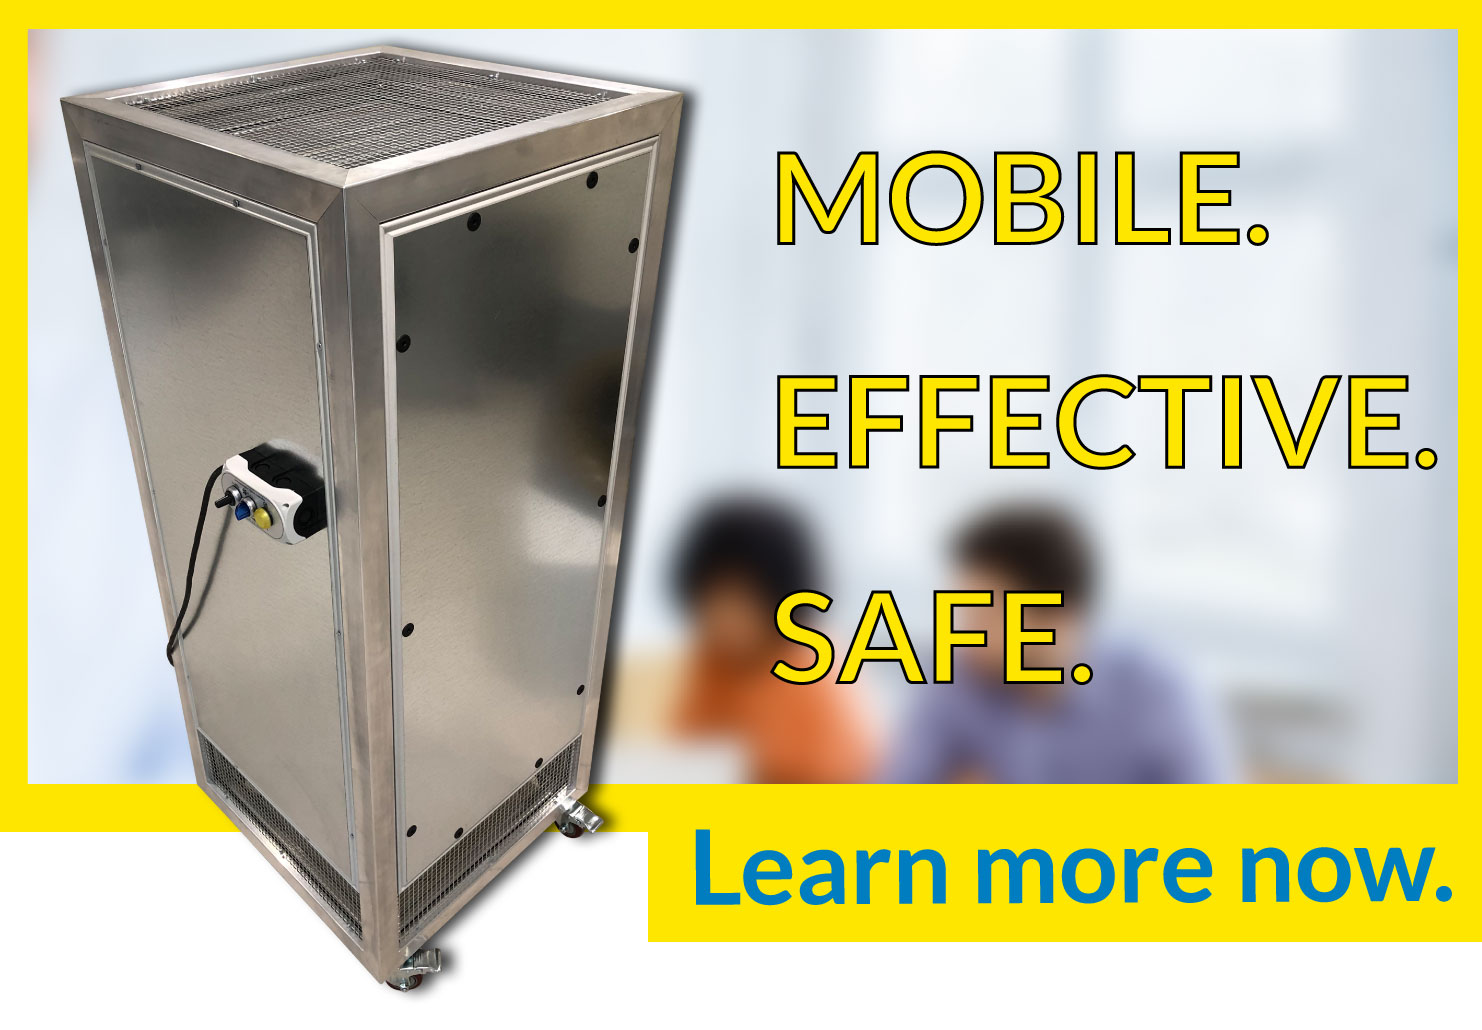 Air Purifier is mobile, effective and safe